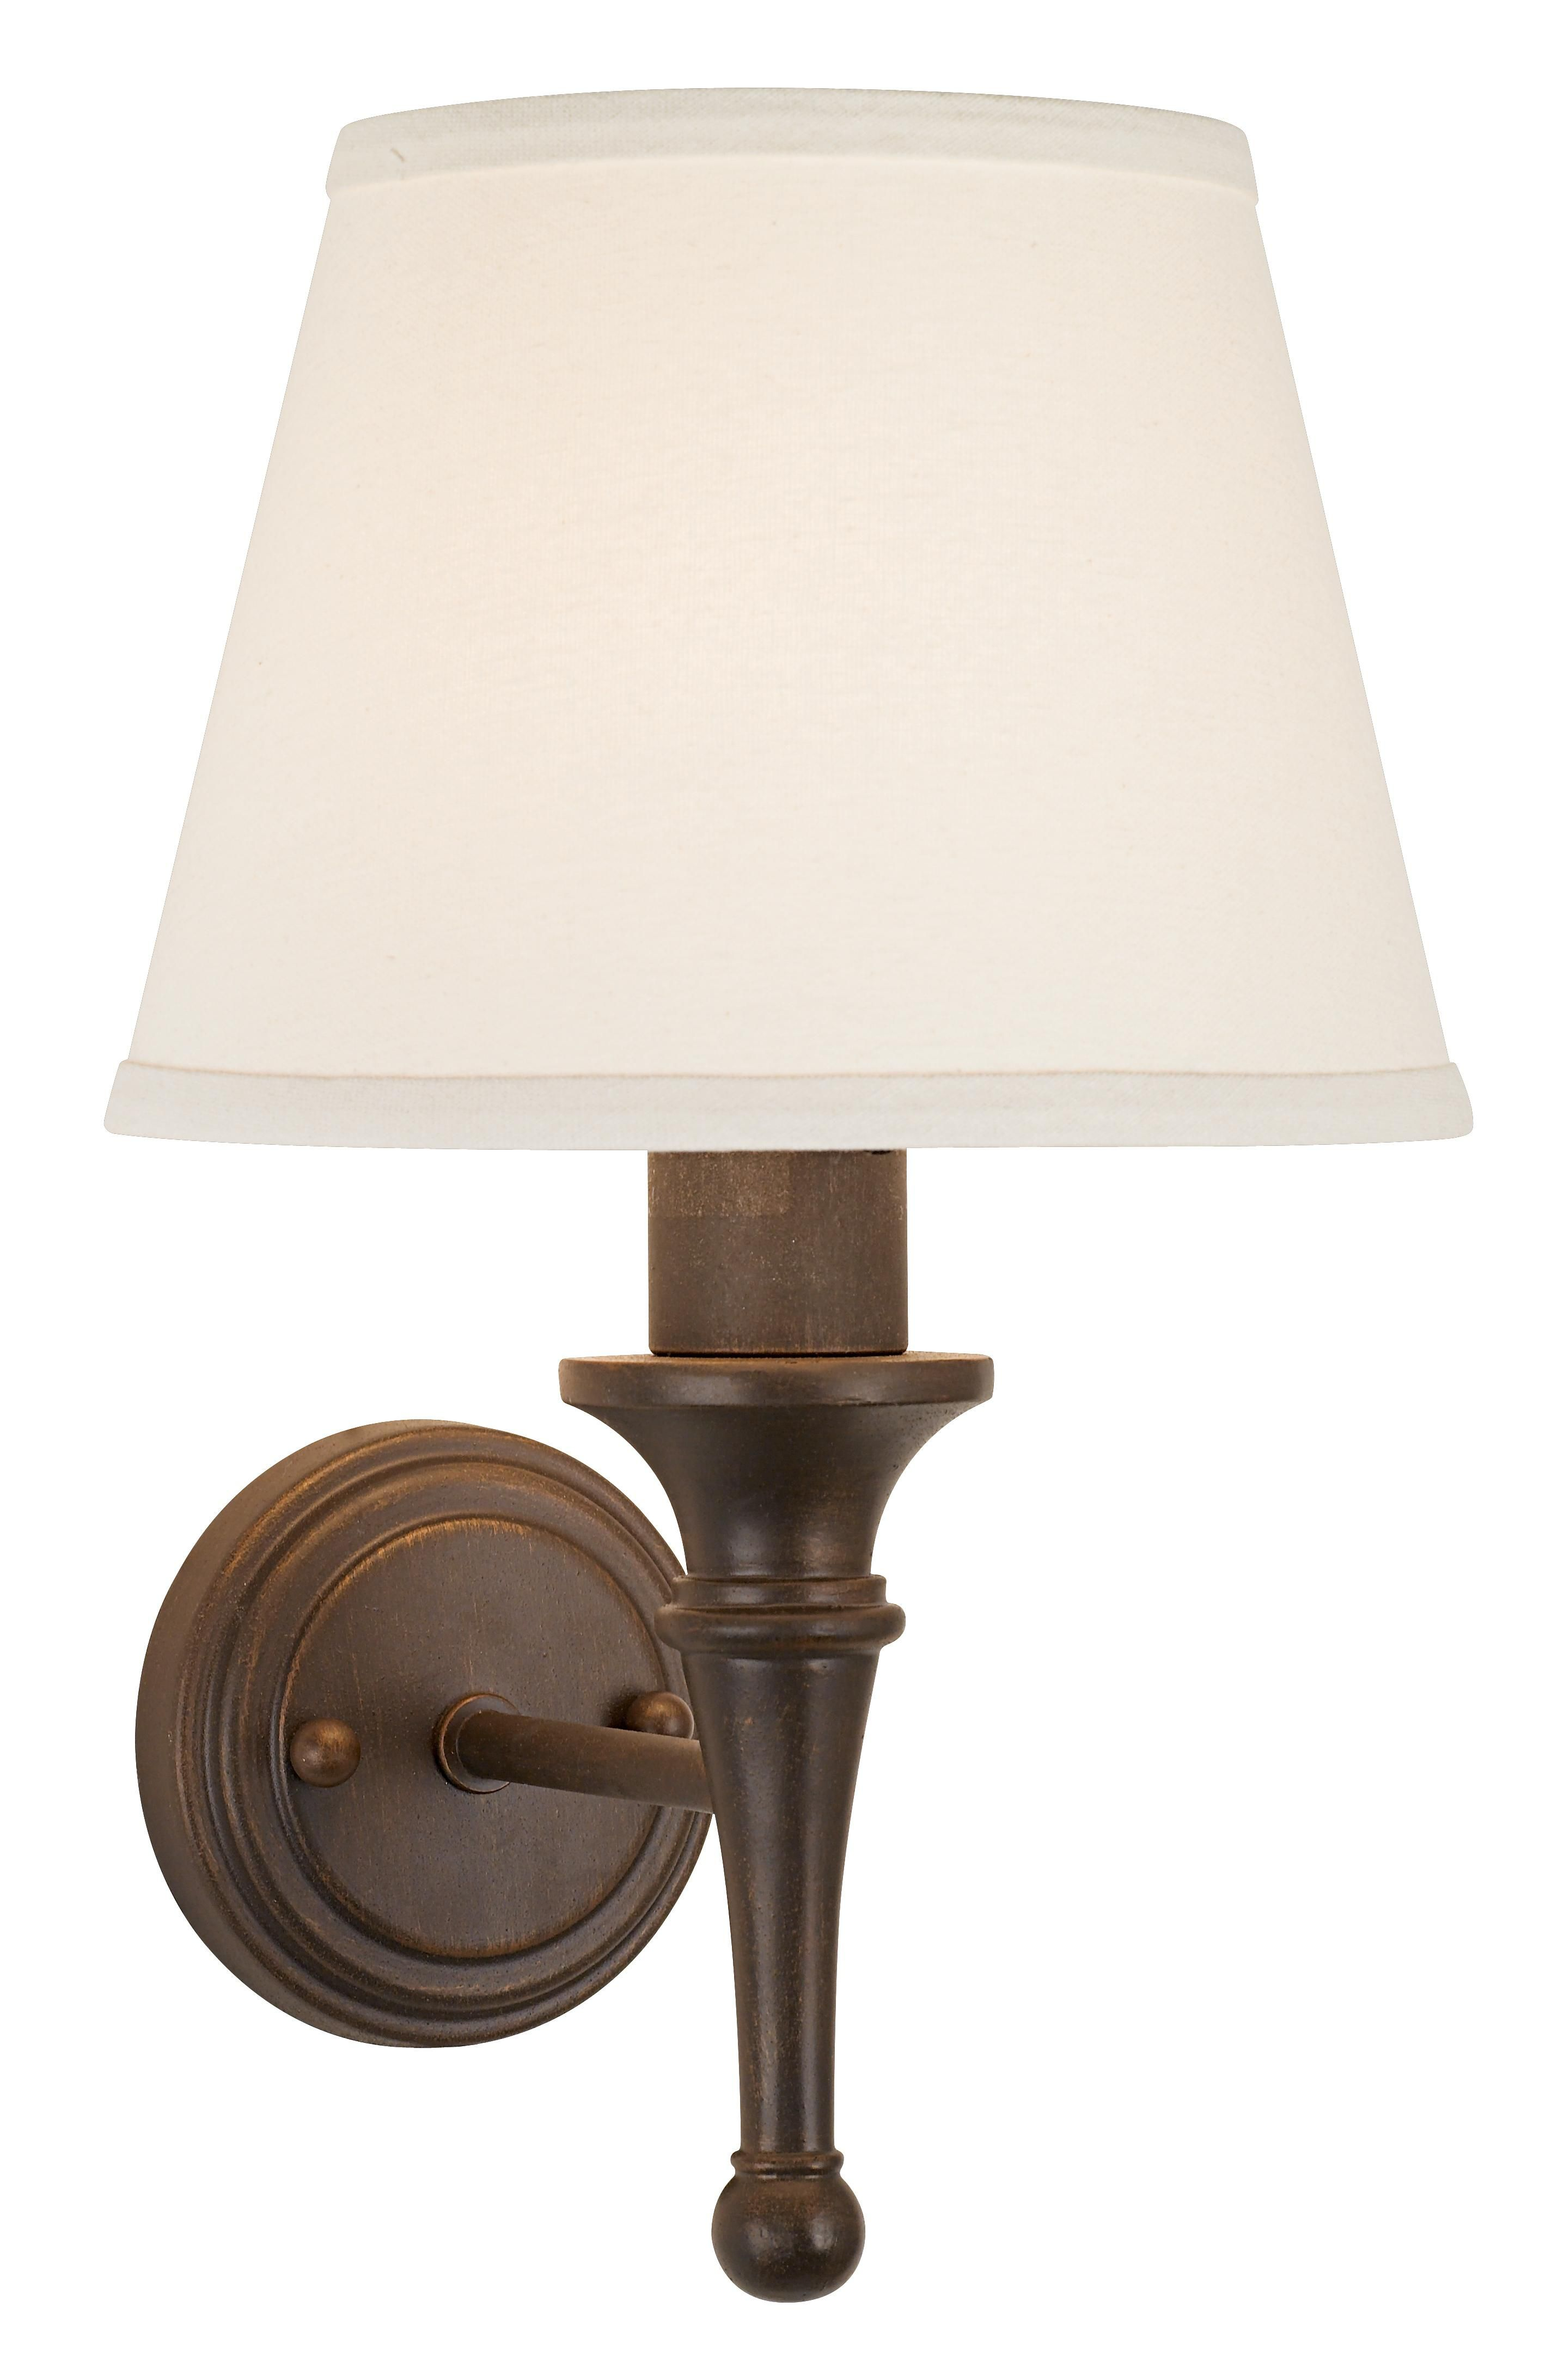 Braidy Bronze Plug In Wall Sconce 58465 Lamps Plus Wall Lamps With Cord Plug In Wall Sconce Sconces